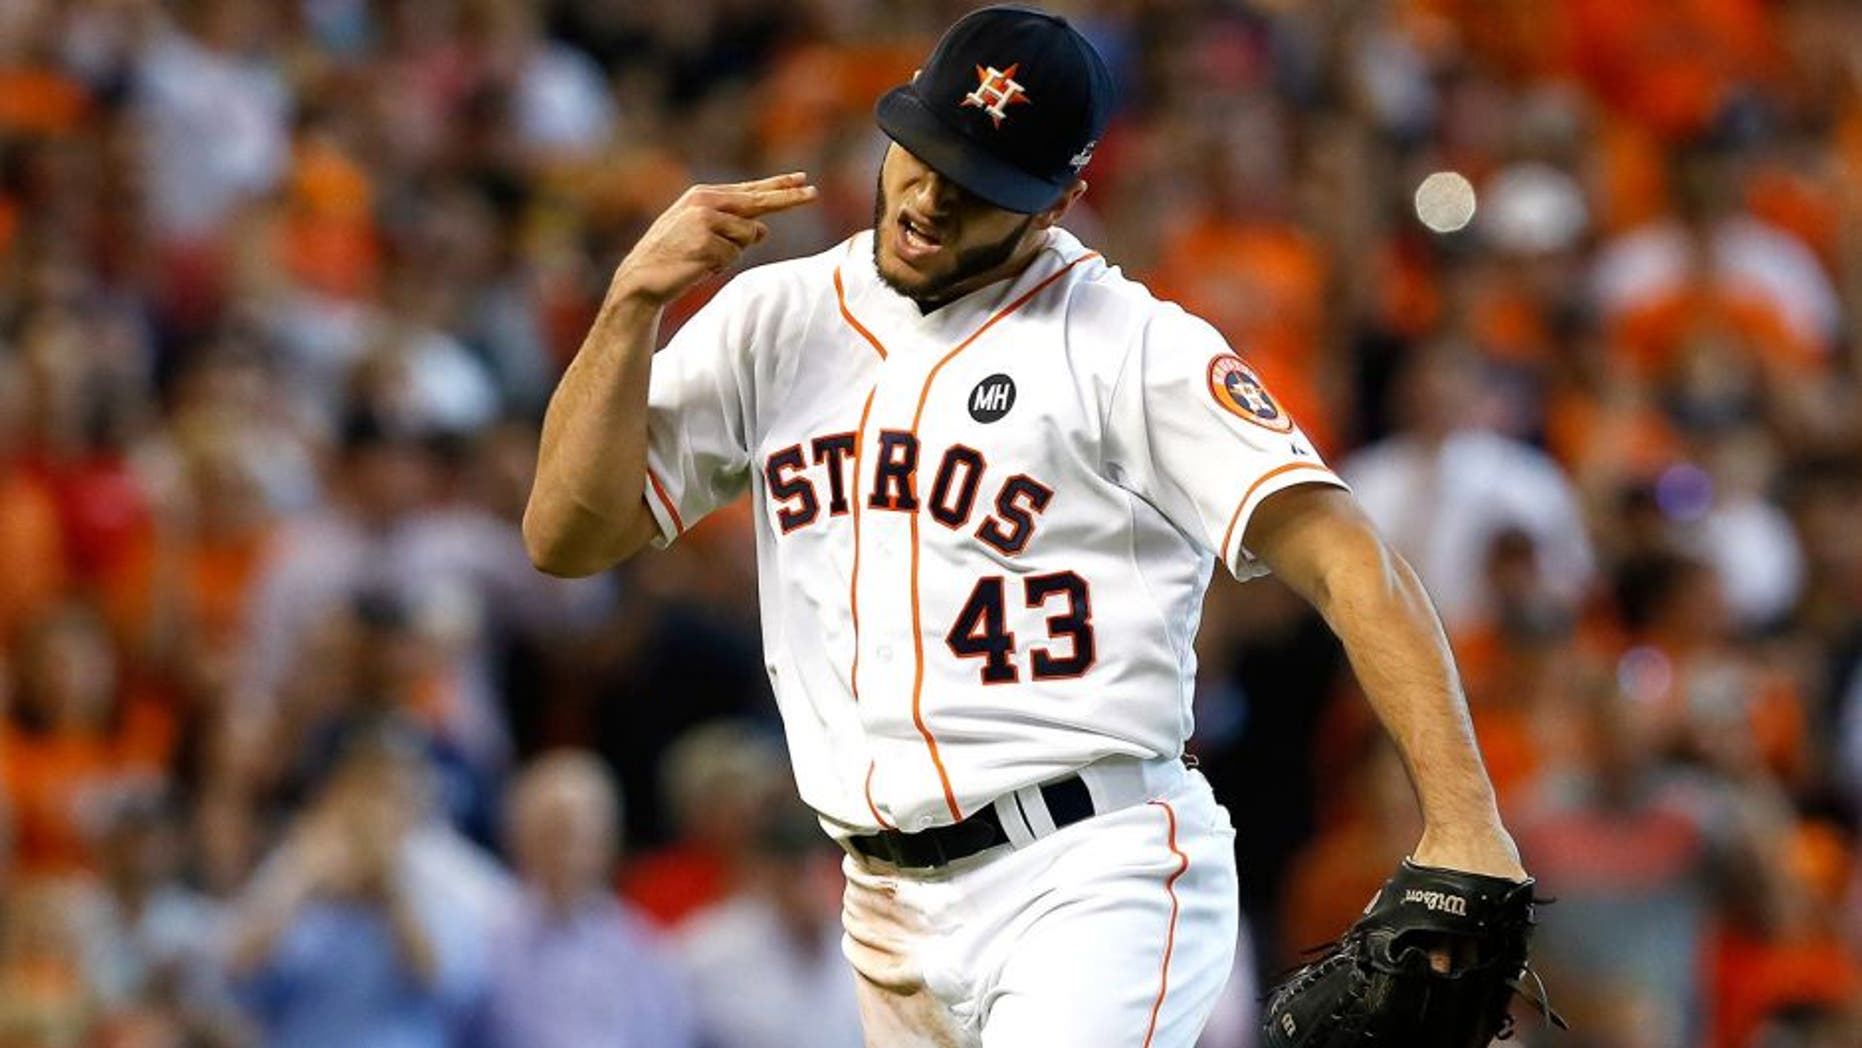 HOUSTON, TX - OCTOBER 12: Lance McCullers #43 of the Houston Astros reacts after the third out in the sixth inning against the Kansas City Royals during game four of the American League Divison Series at Minute Maid Park on October 12, 2015 in Houston, Texas. (Photo by Bob Levey/Getty Images)